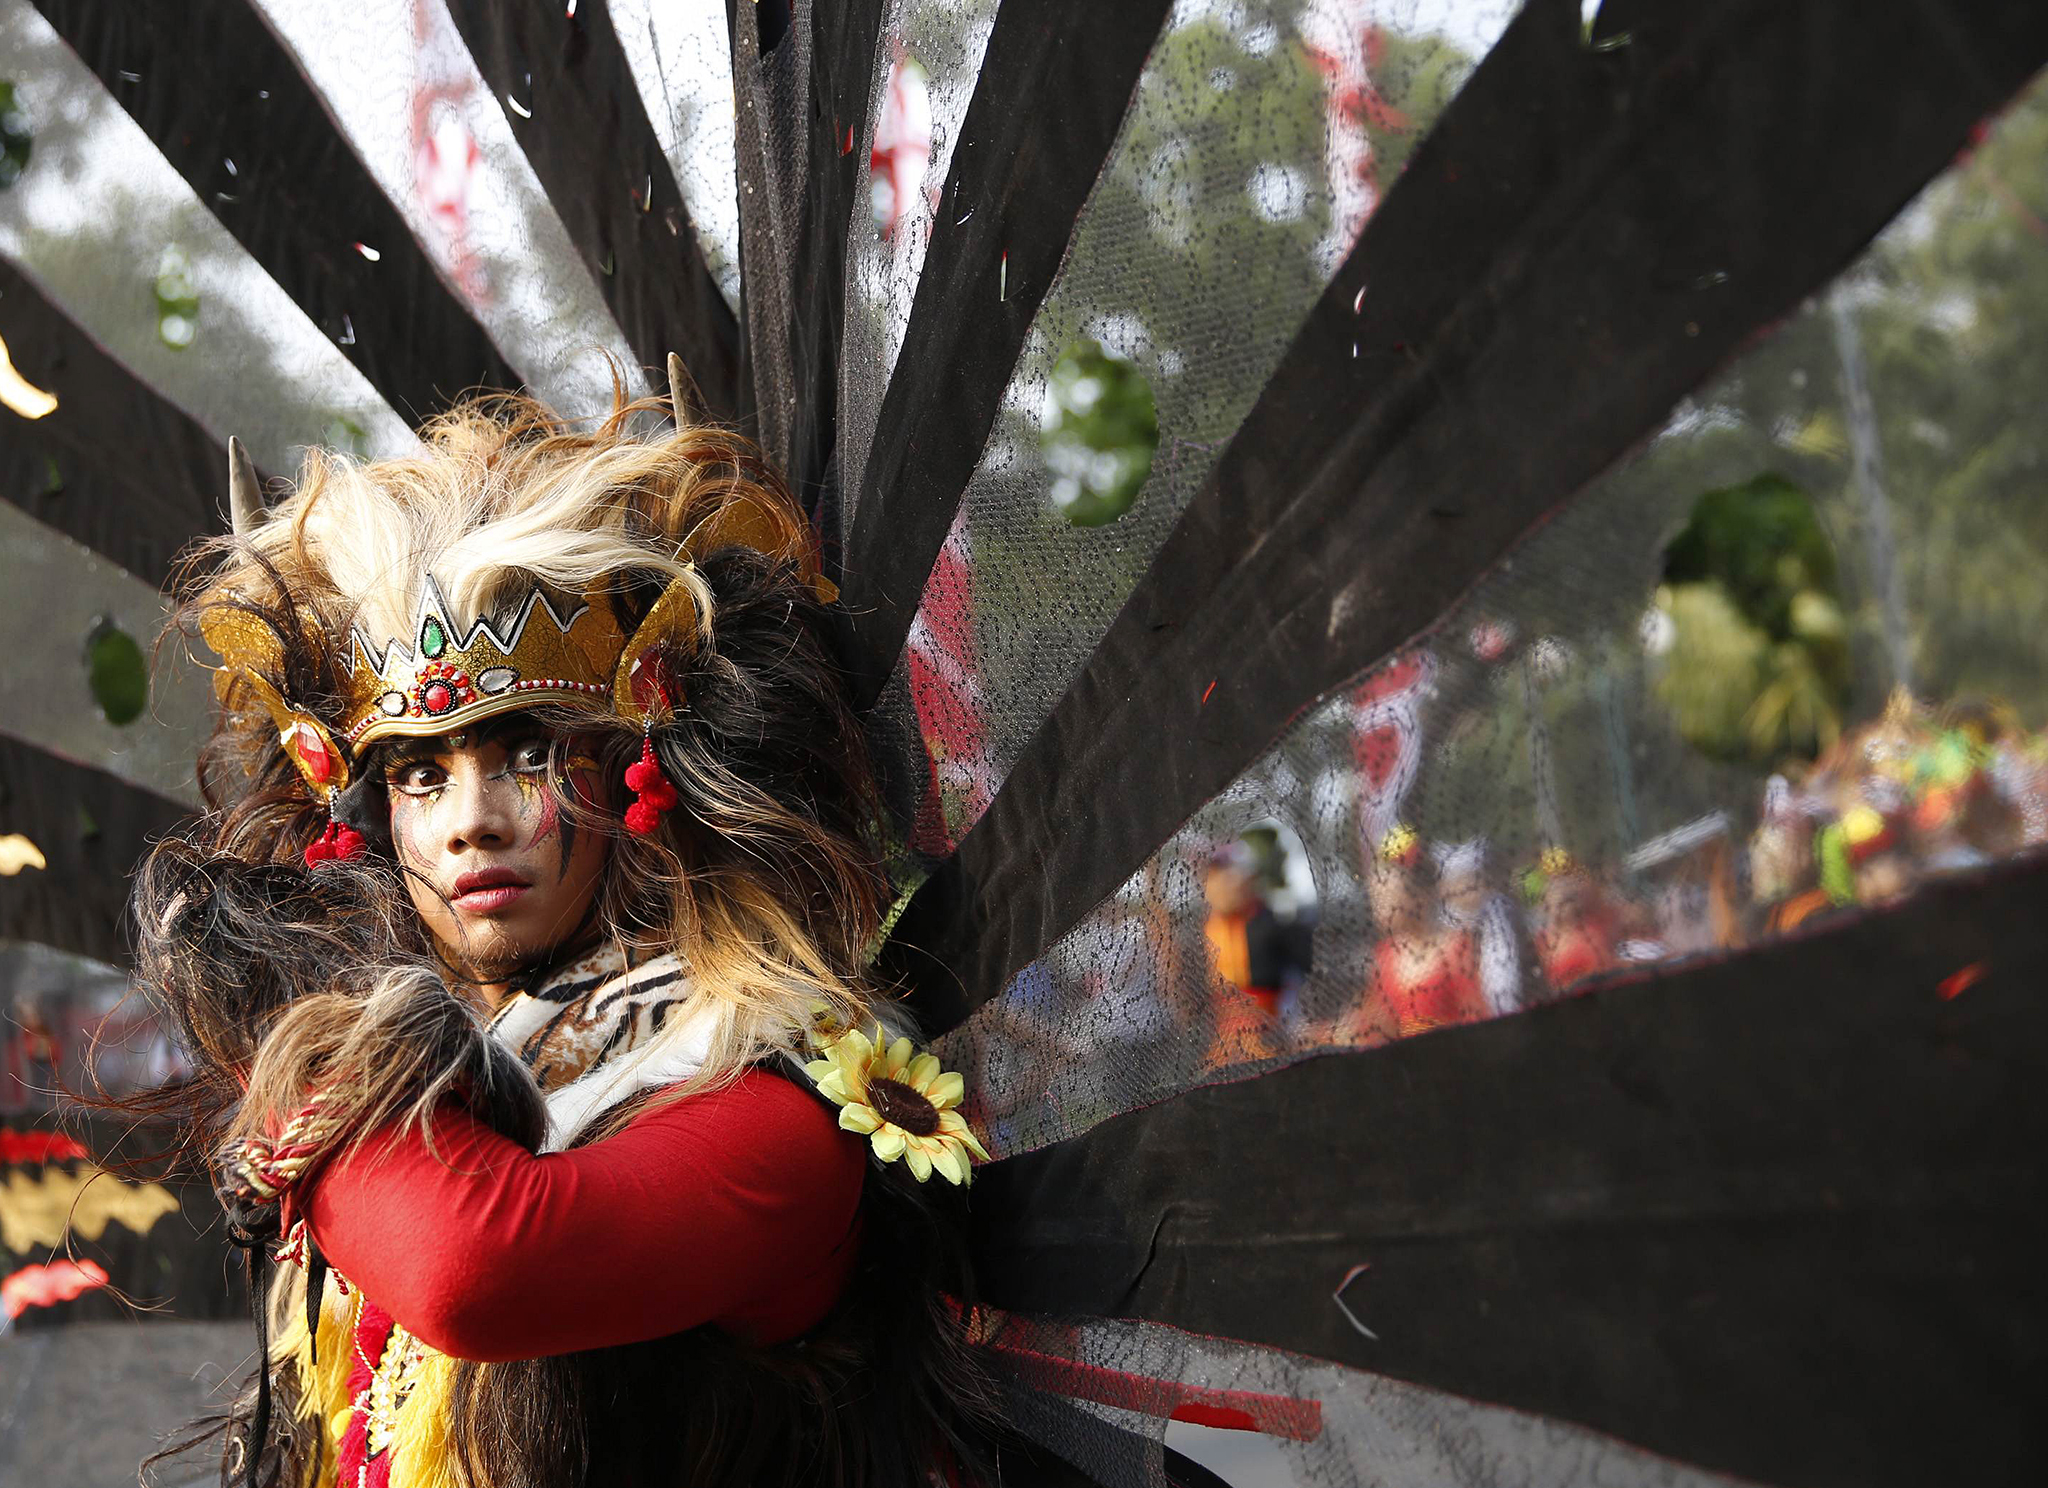 Photo © Darren Whiteside / Reuters | Indonesian Dancer